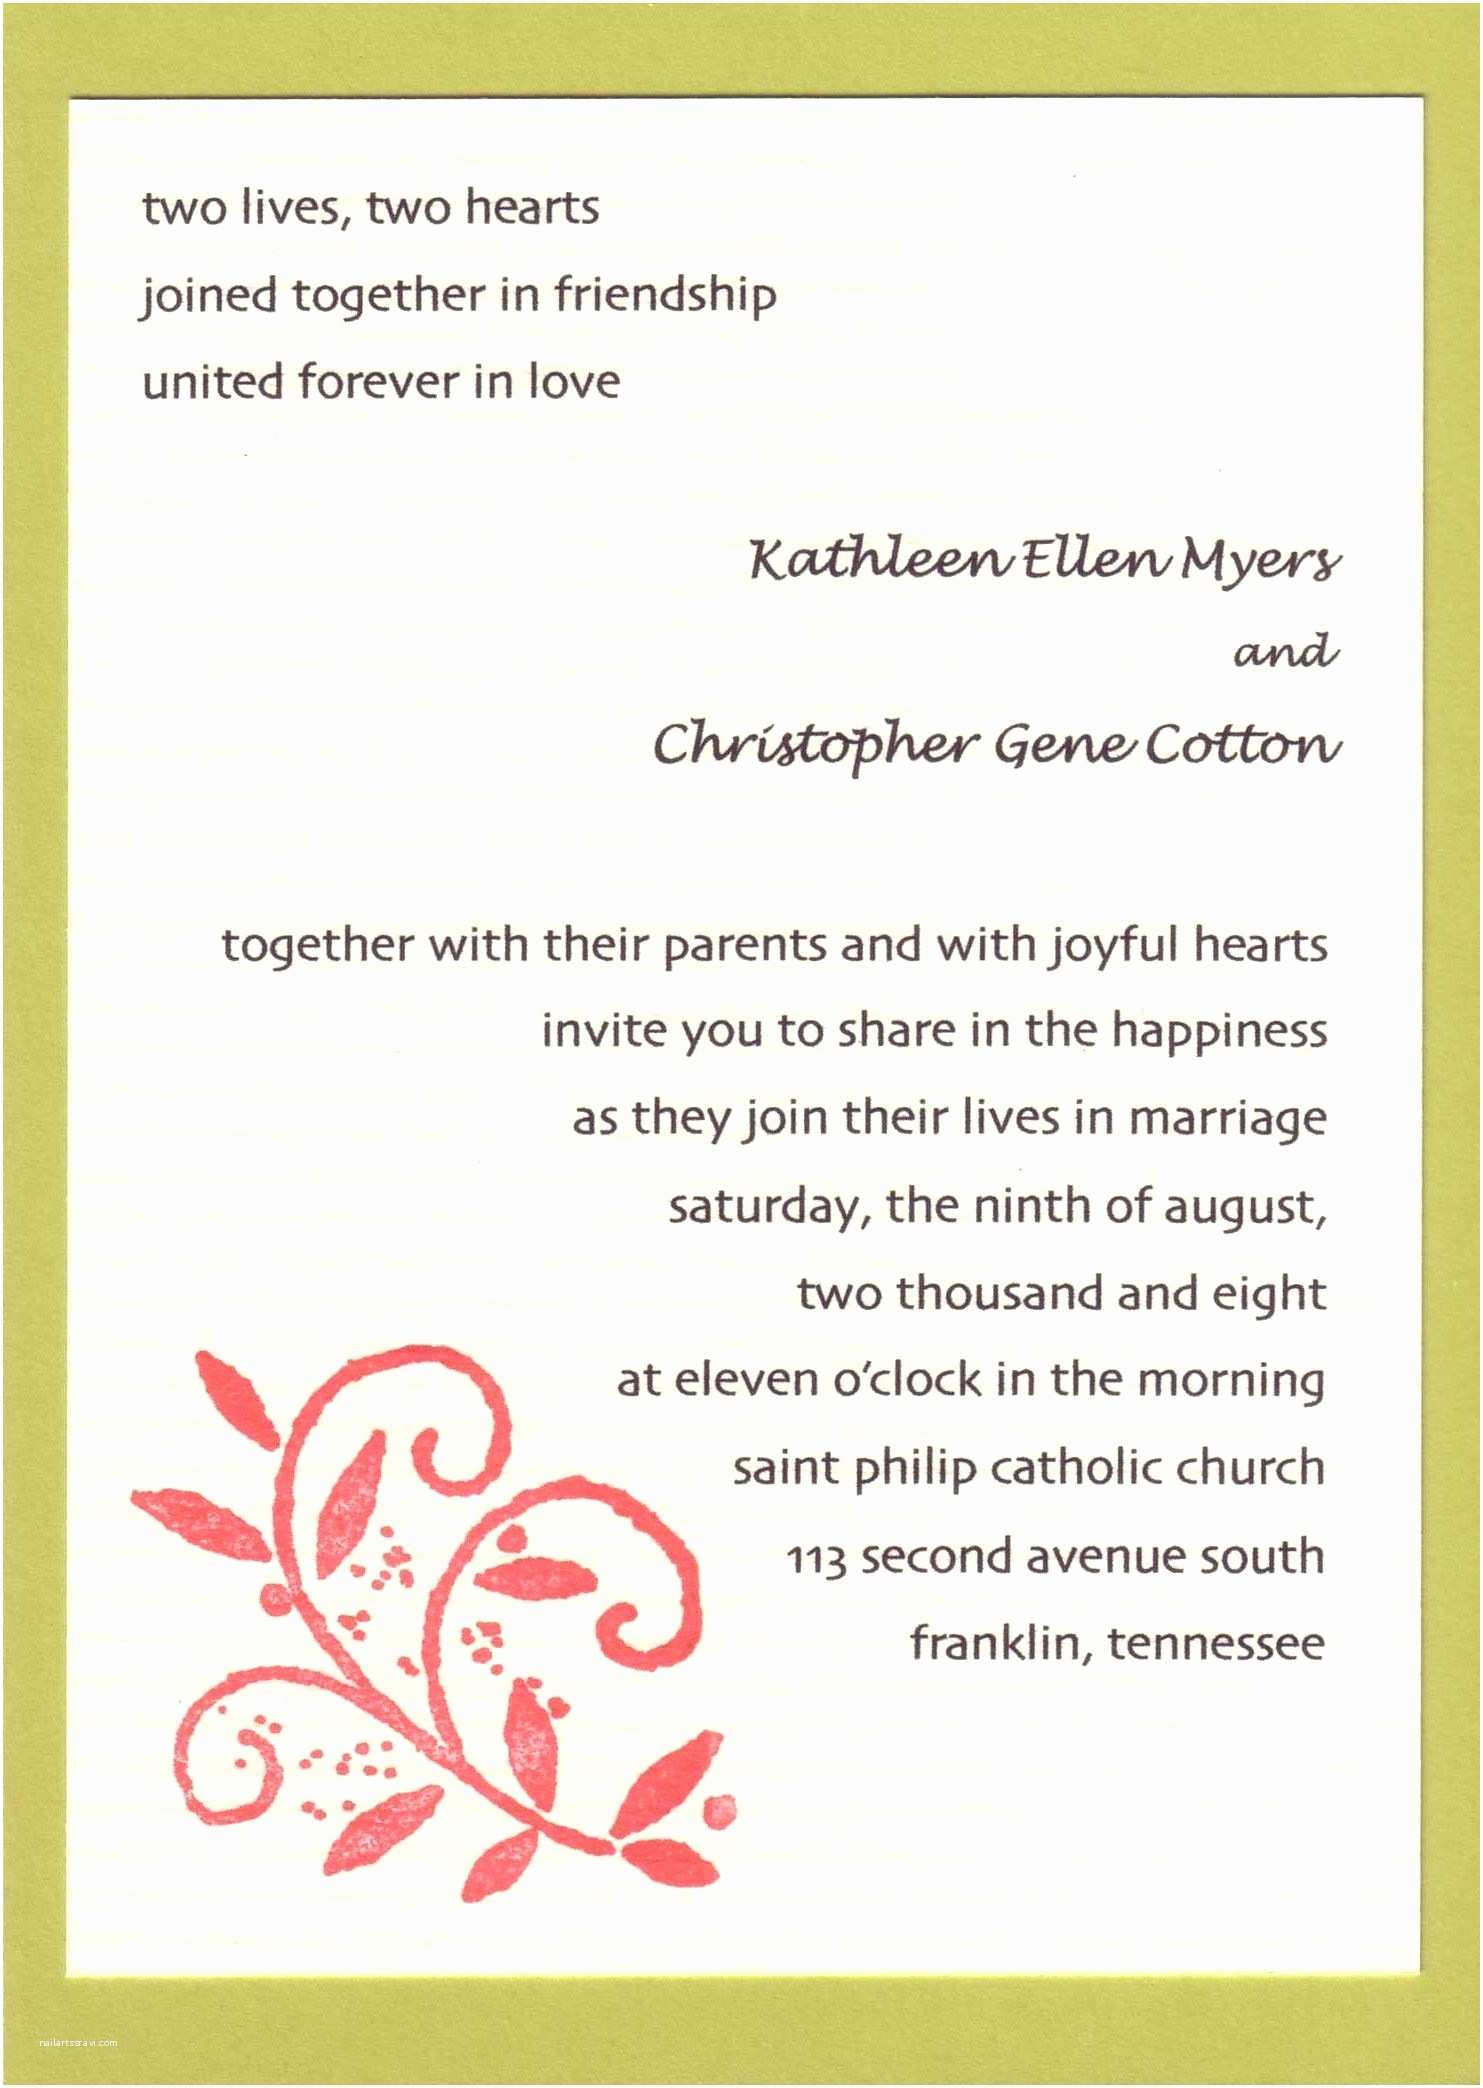 Indian Wedding Invitation Quotes Invitation Wording Quotes Inspirationalnew Hindu Wedding